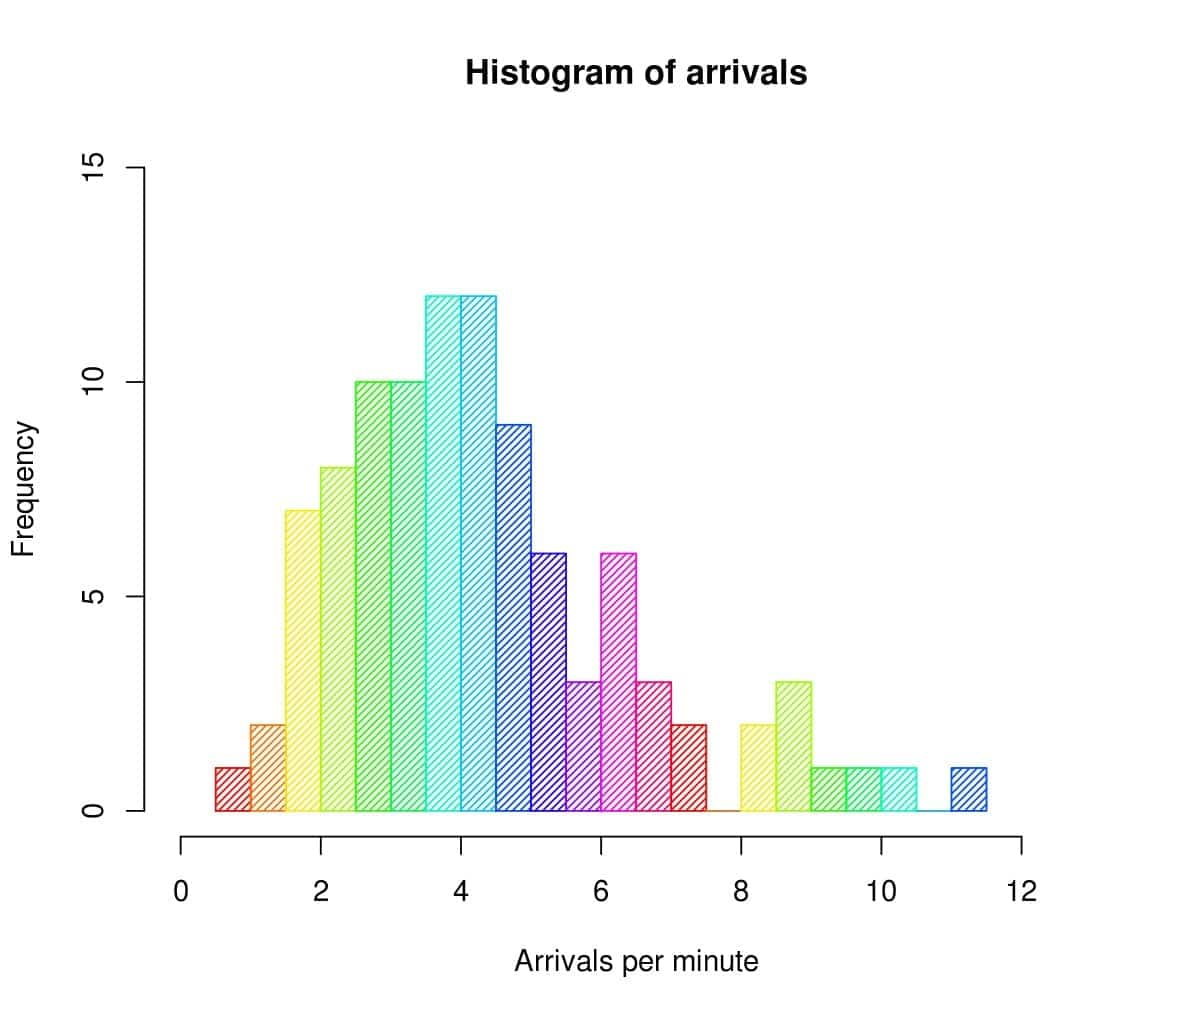 how to draw a histogram histogram drawing guide best way to draw a histogram